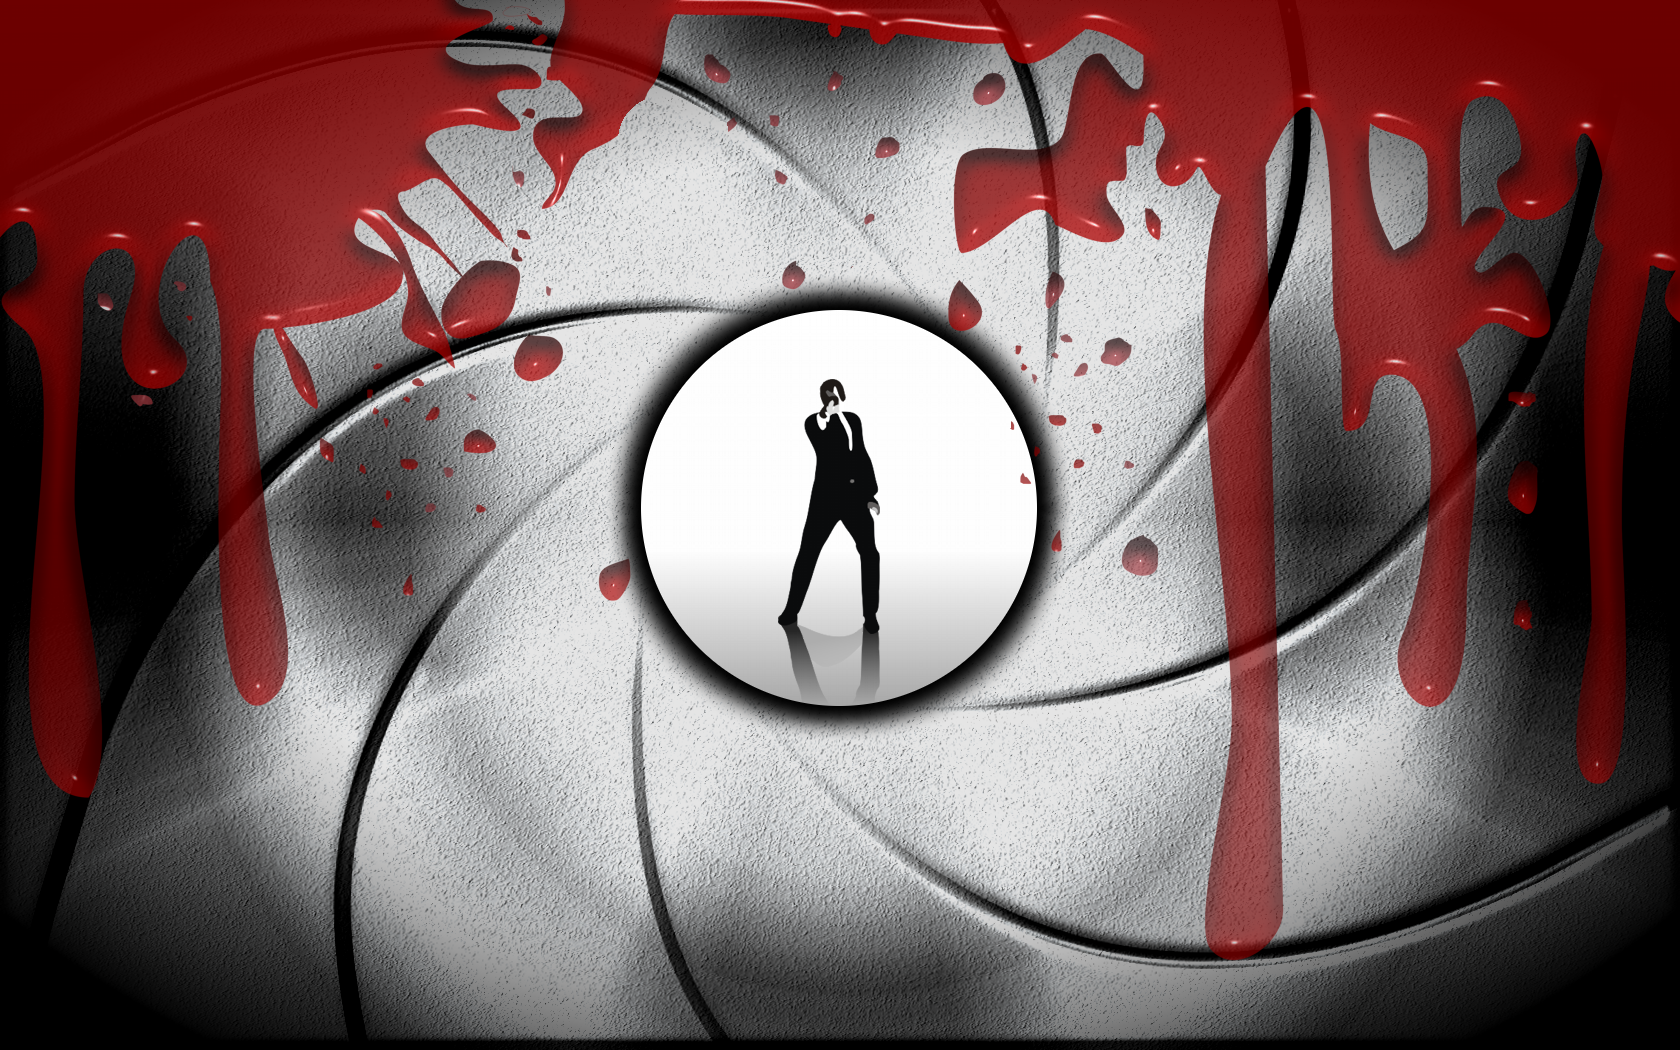 Pin by Gary Cook on ULTIMATE 007 James bond, Art, Barrel